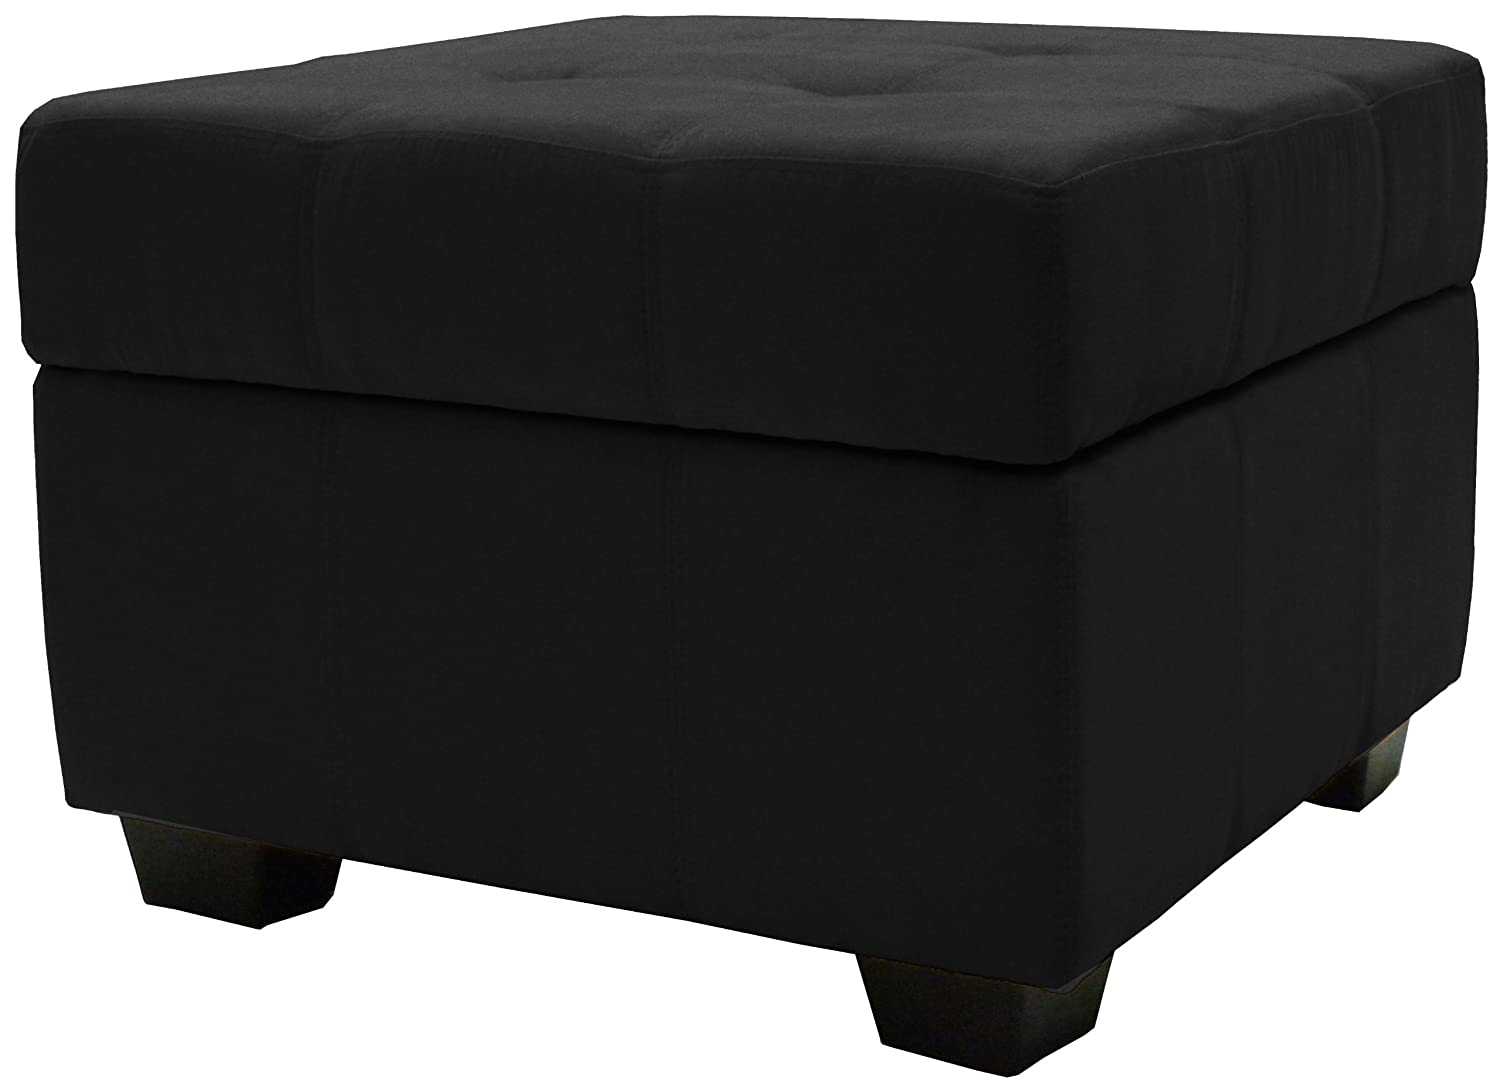 Amazon.com: Epic Furnishings Vanderbilt 24-Inch Square Tufted Padded Hinged Storage  Ottoman Bench, Leather Look Navy: Kitchen & Dining - Amazon.com: Epic Furnishings Vanderbilt 24-Inch Square Tufted